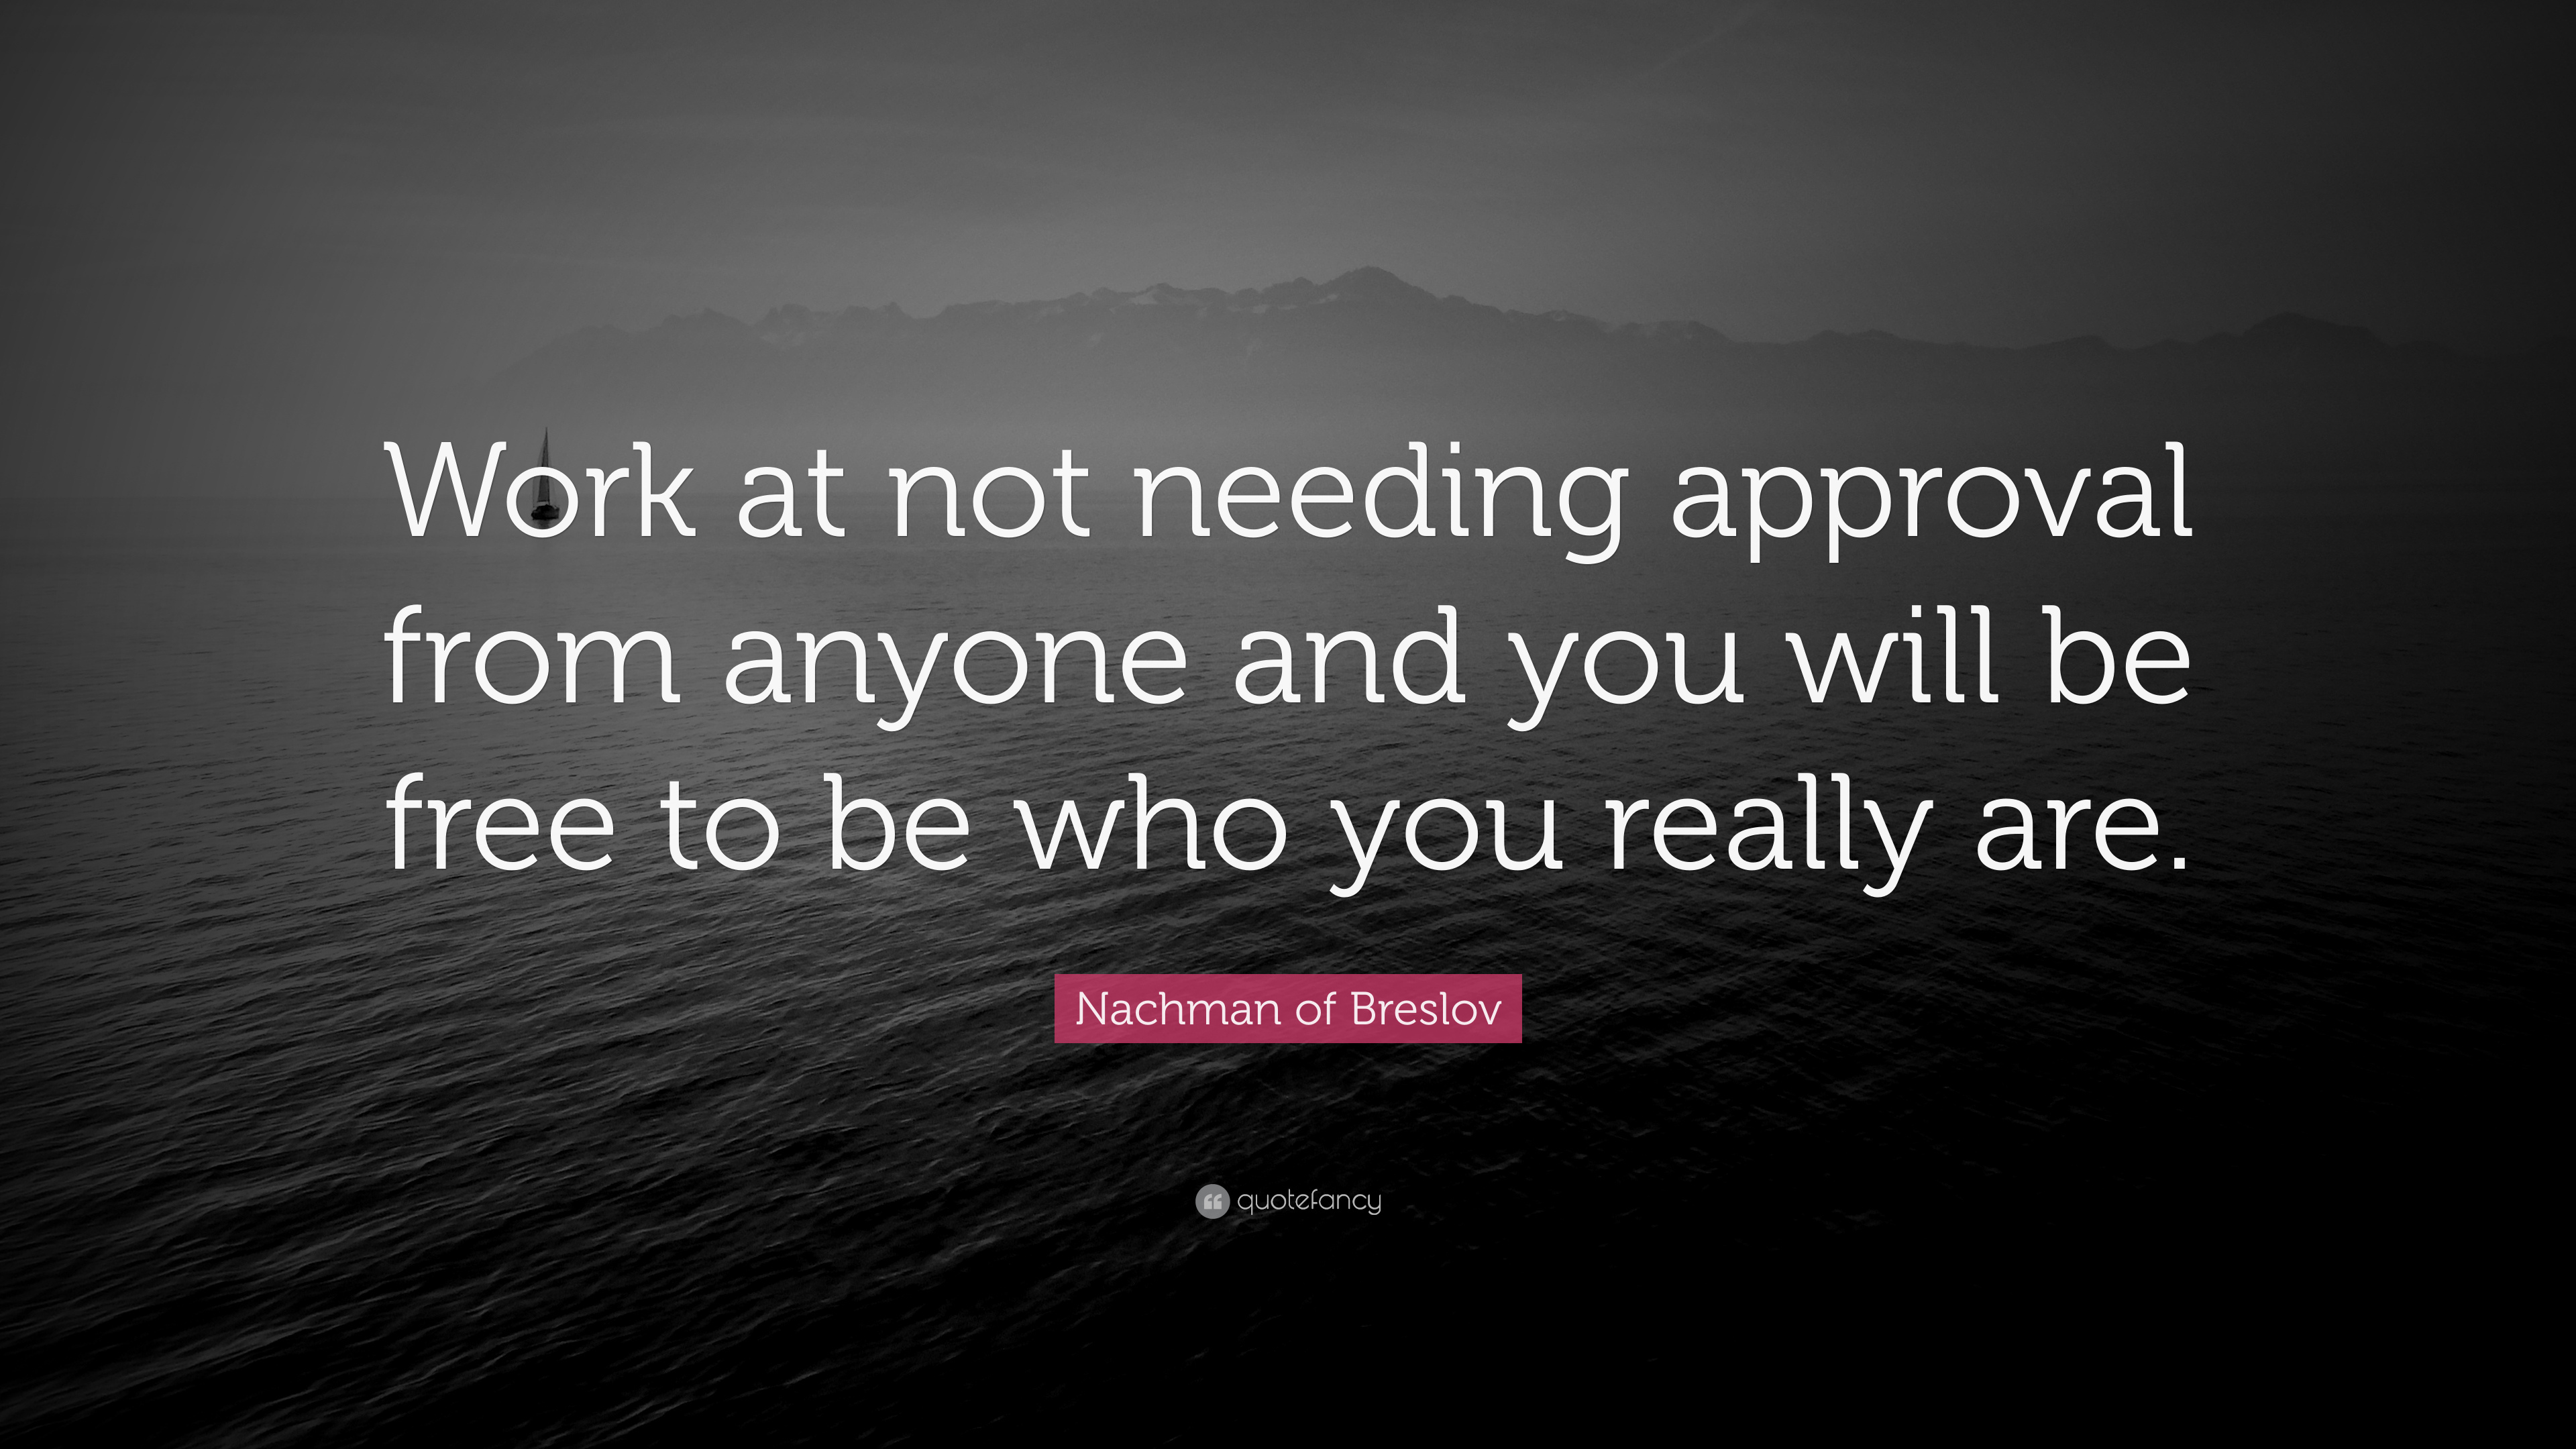 Nachman Of Breslov Quote Work At Not Needing Approval From Anyone